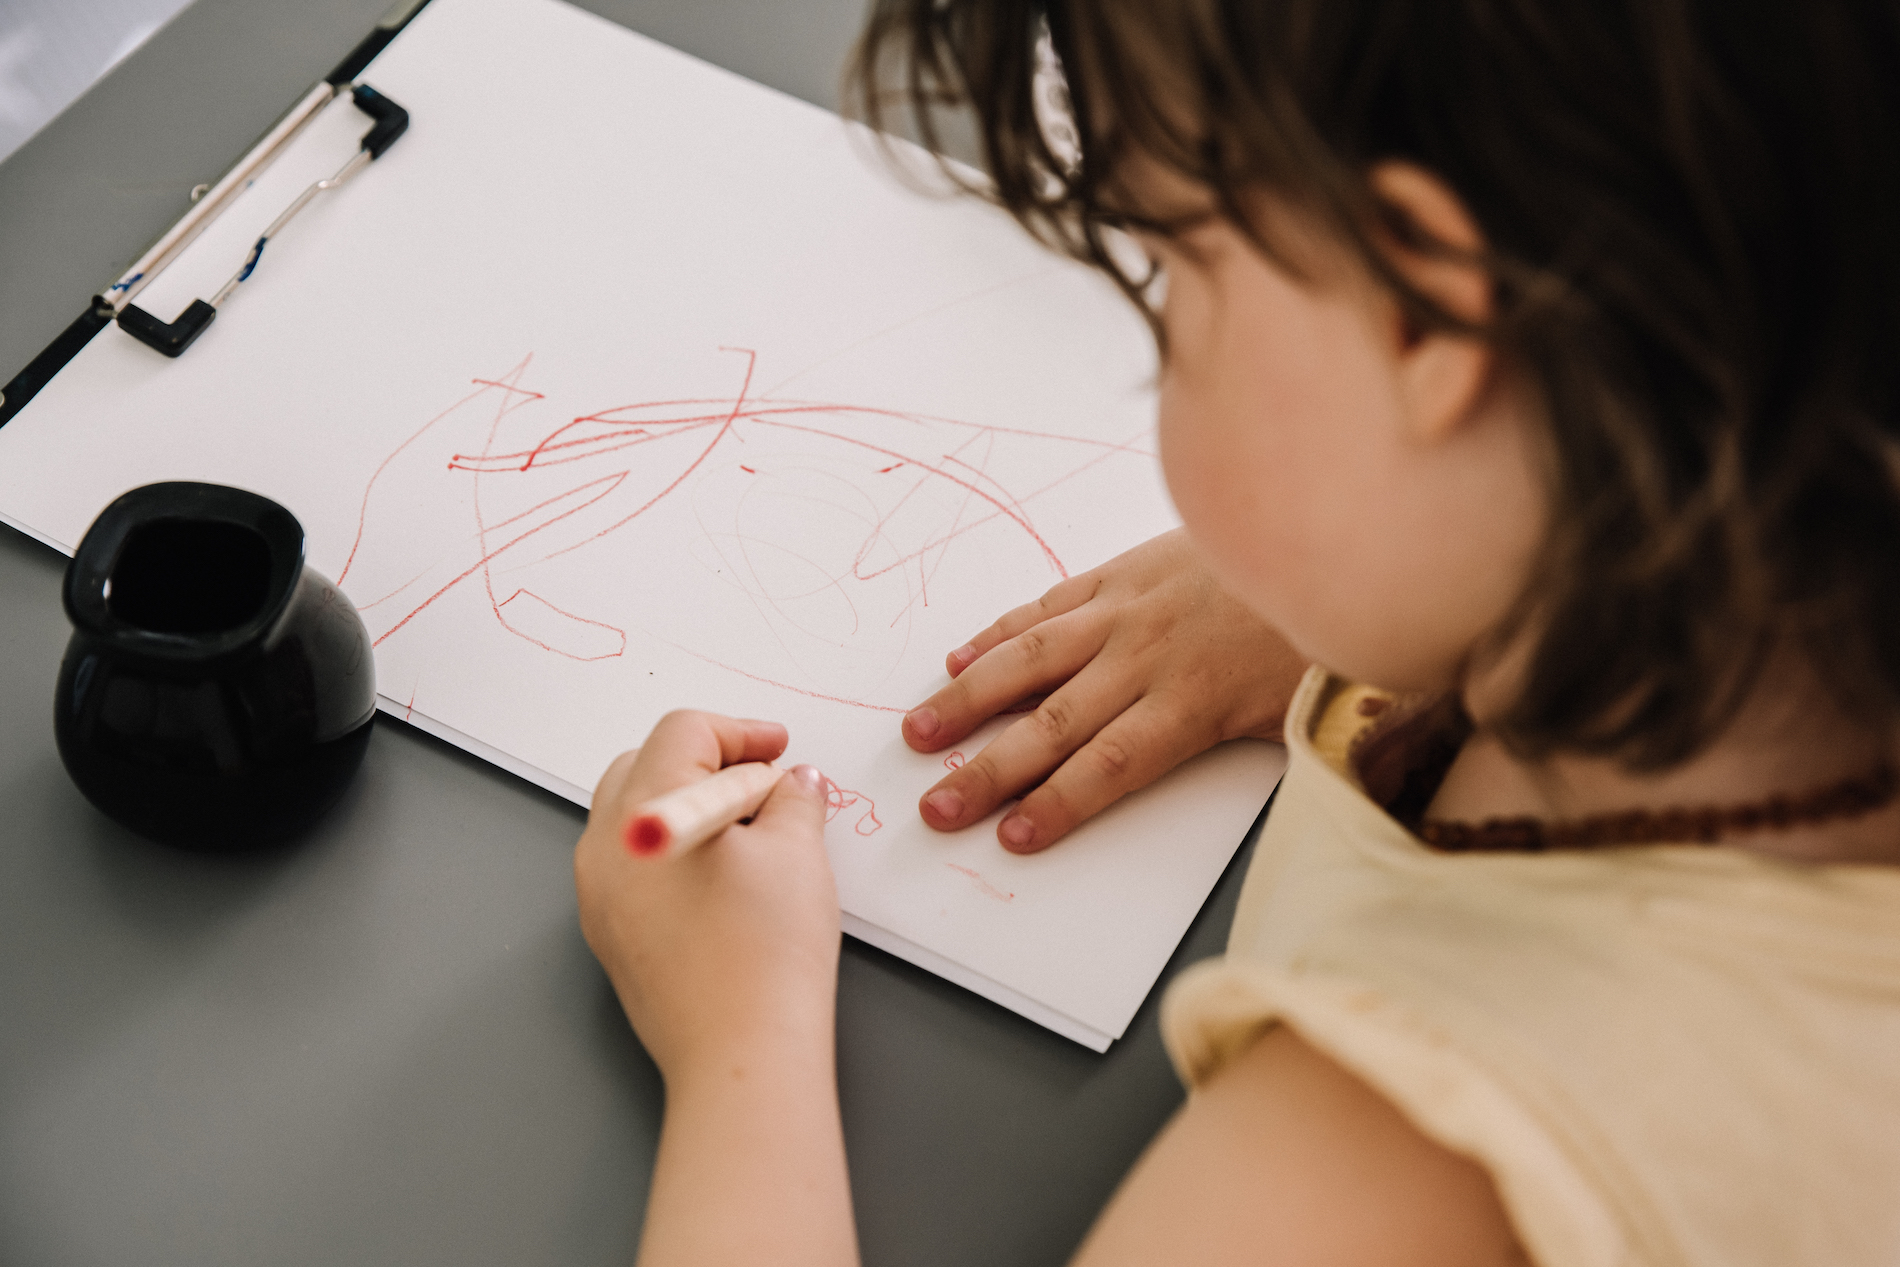 Three year old writing using a pen